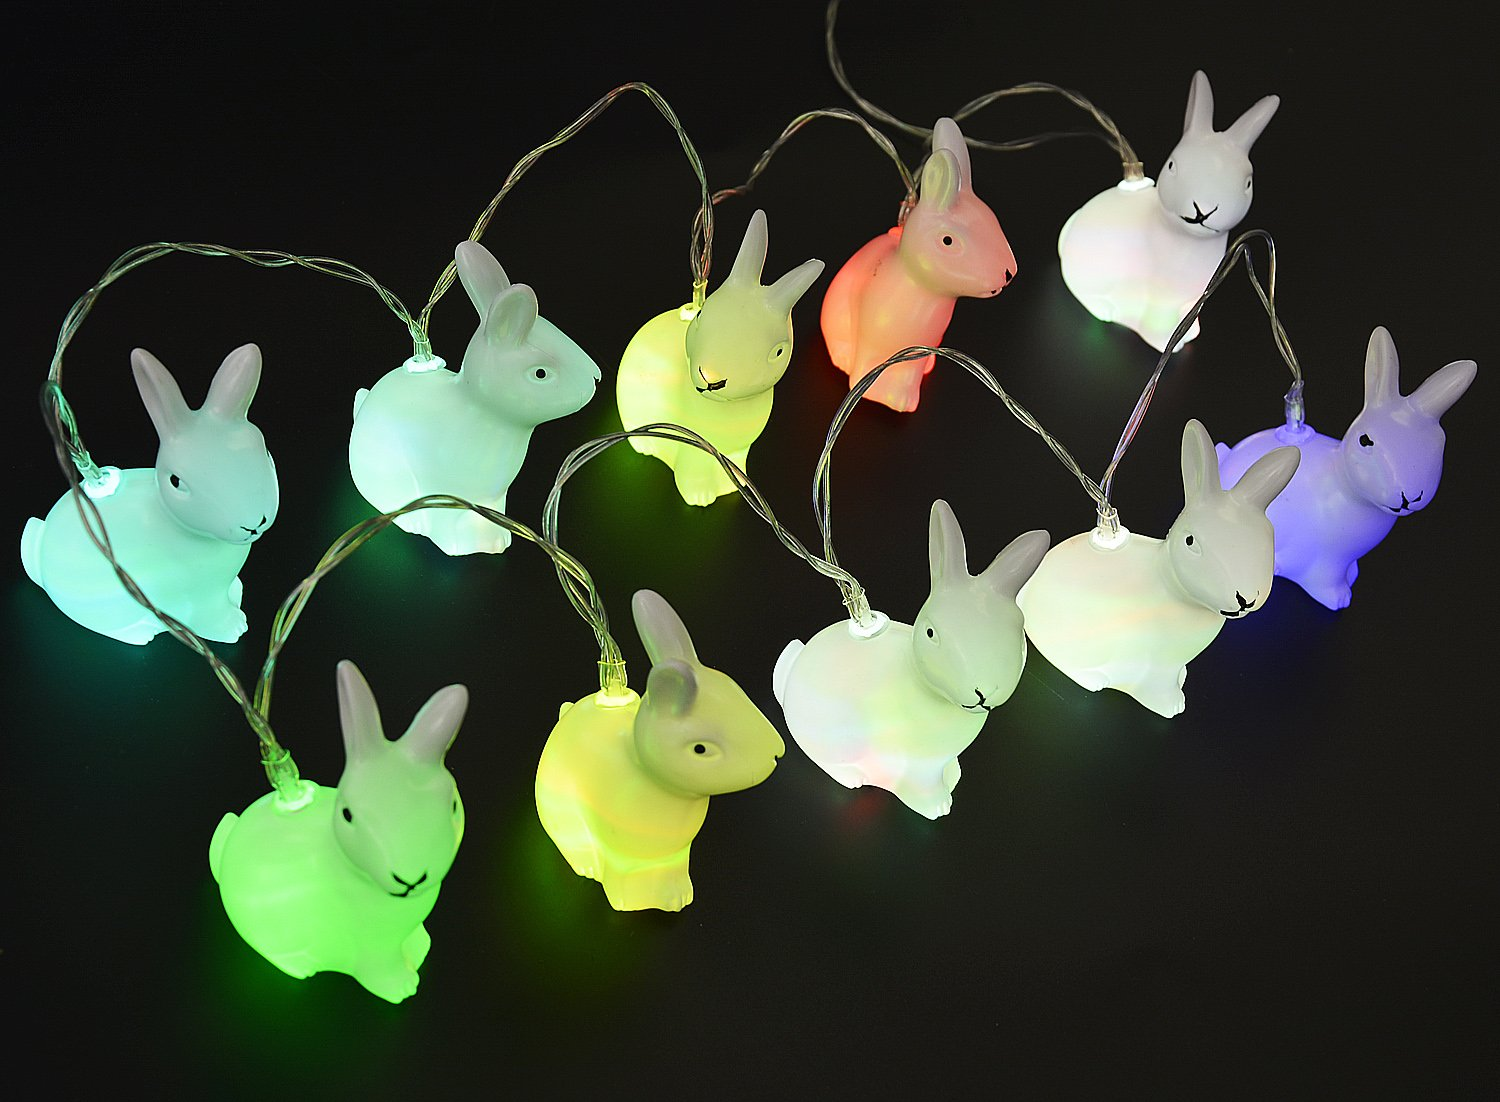 Kapmore Bunny Easter LED Night Light, Easter Rabbit String Lights Bunny Shaped 10 LED Battery Powered Decorative Lights with Clear Cord for Valentine Party,Holiday Night, Easter, Gardens, Wedding